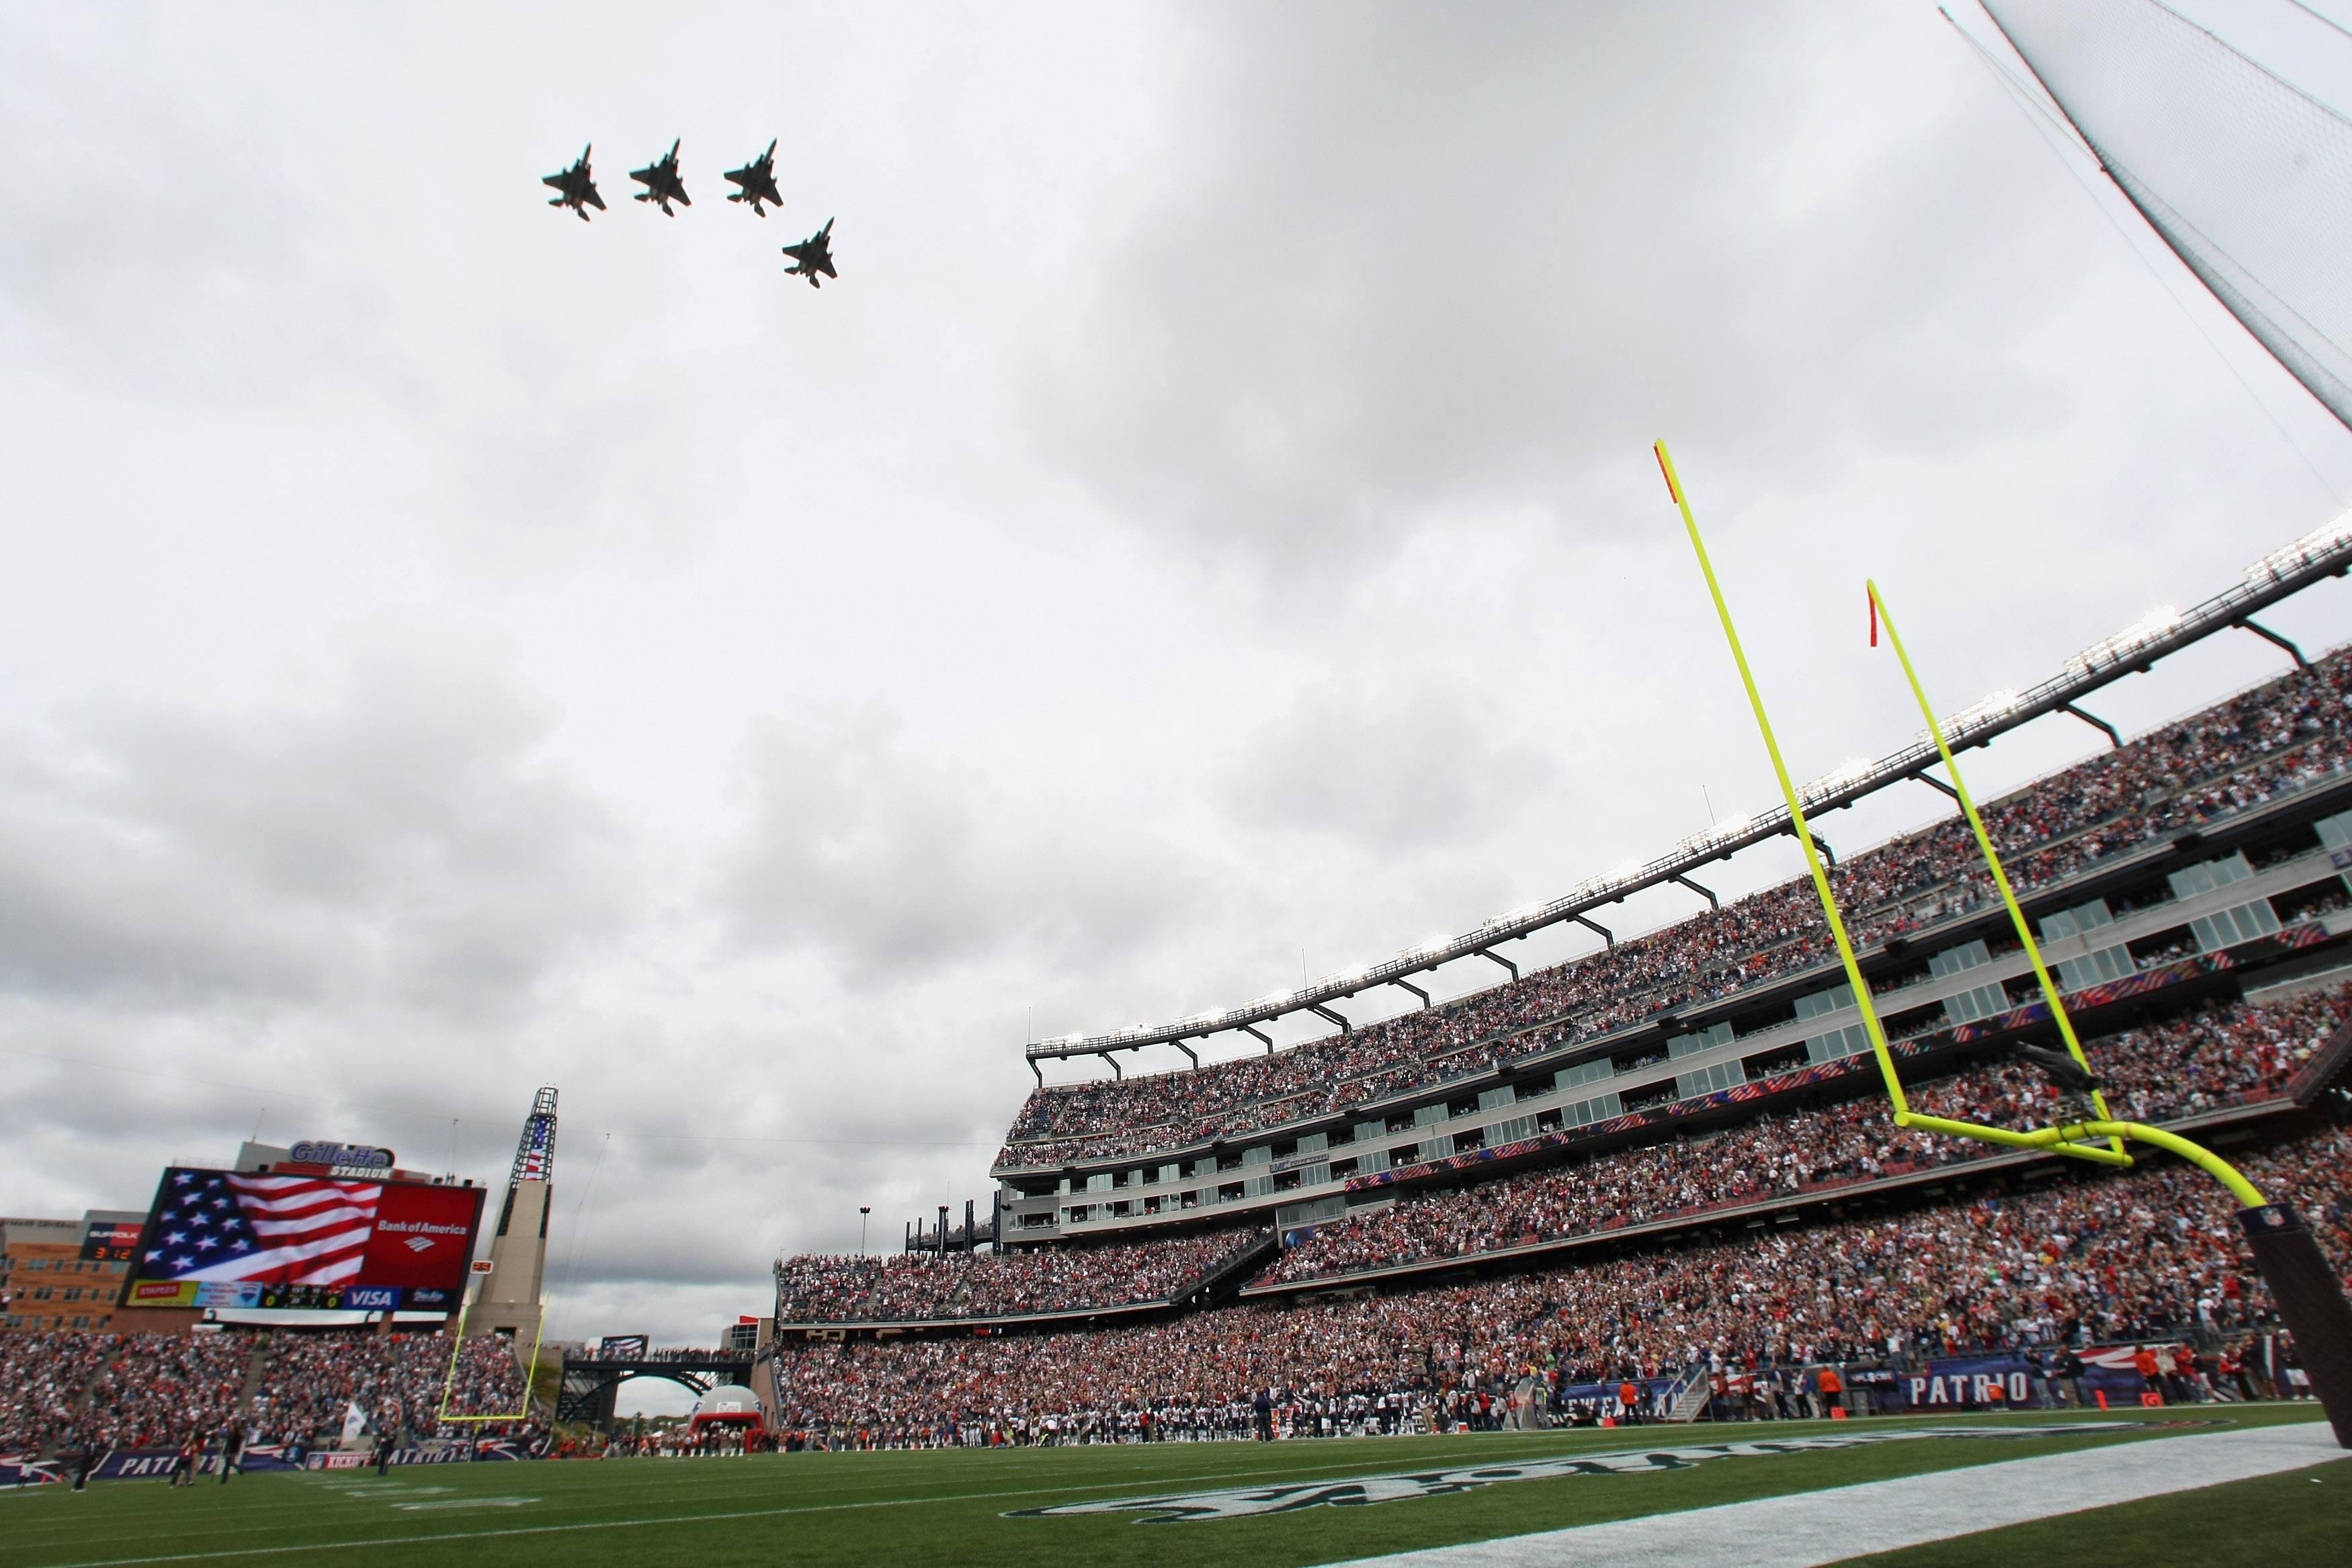 Jets flying over football field